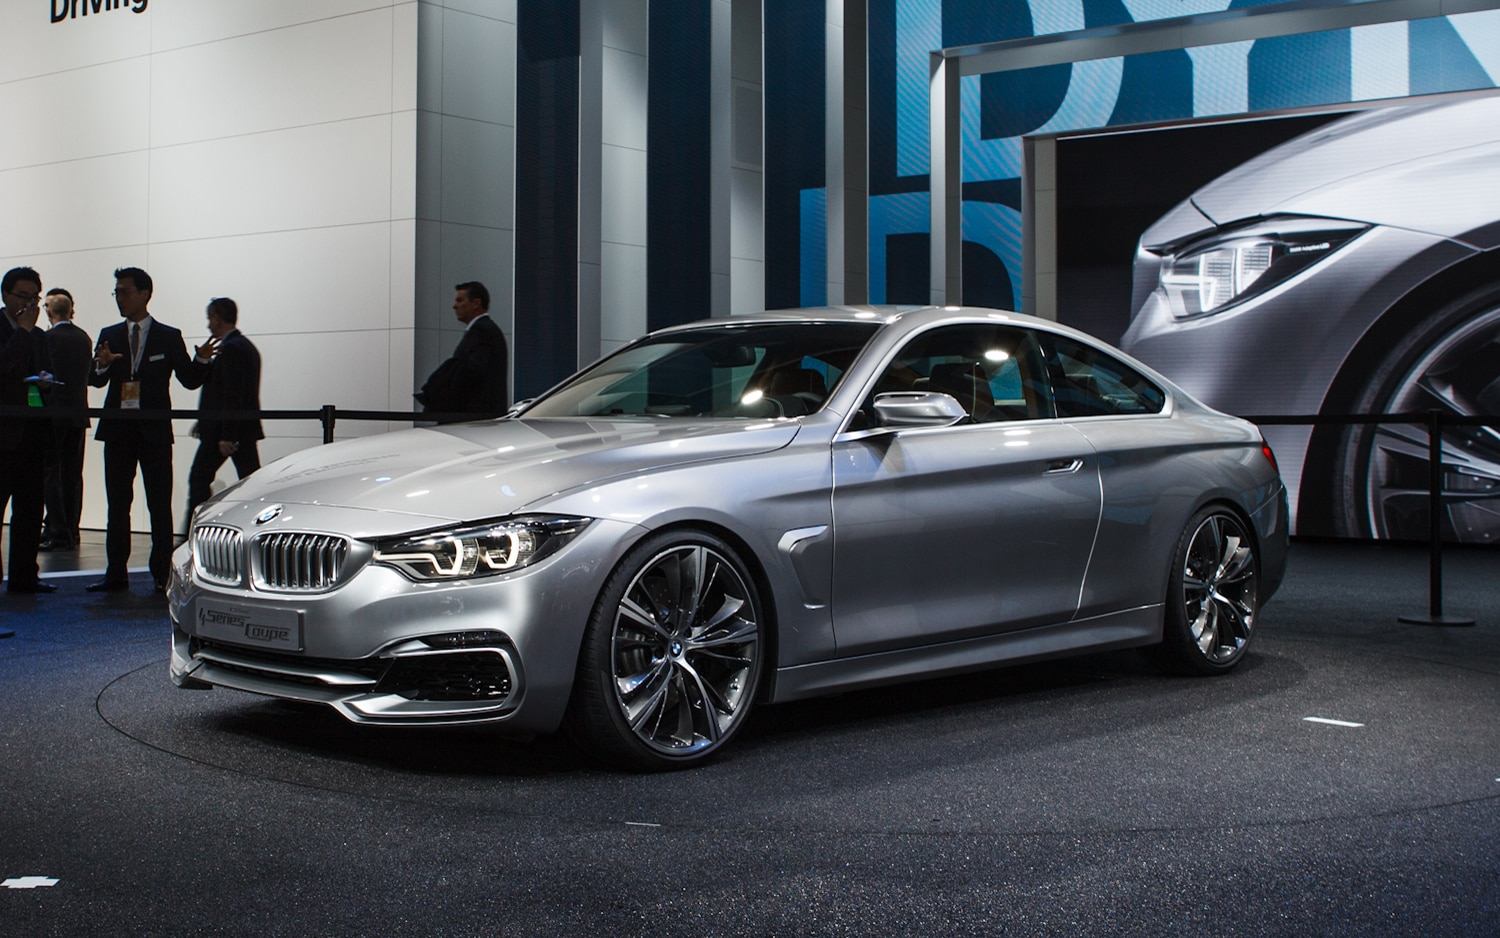 2014 BMW 4 Series Coupe Concept Front Left Side View 21